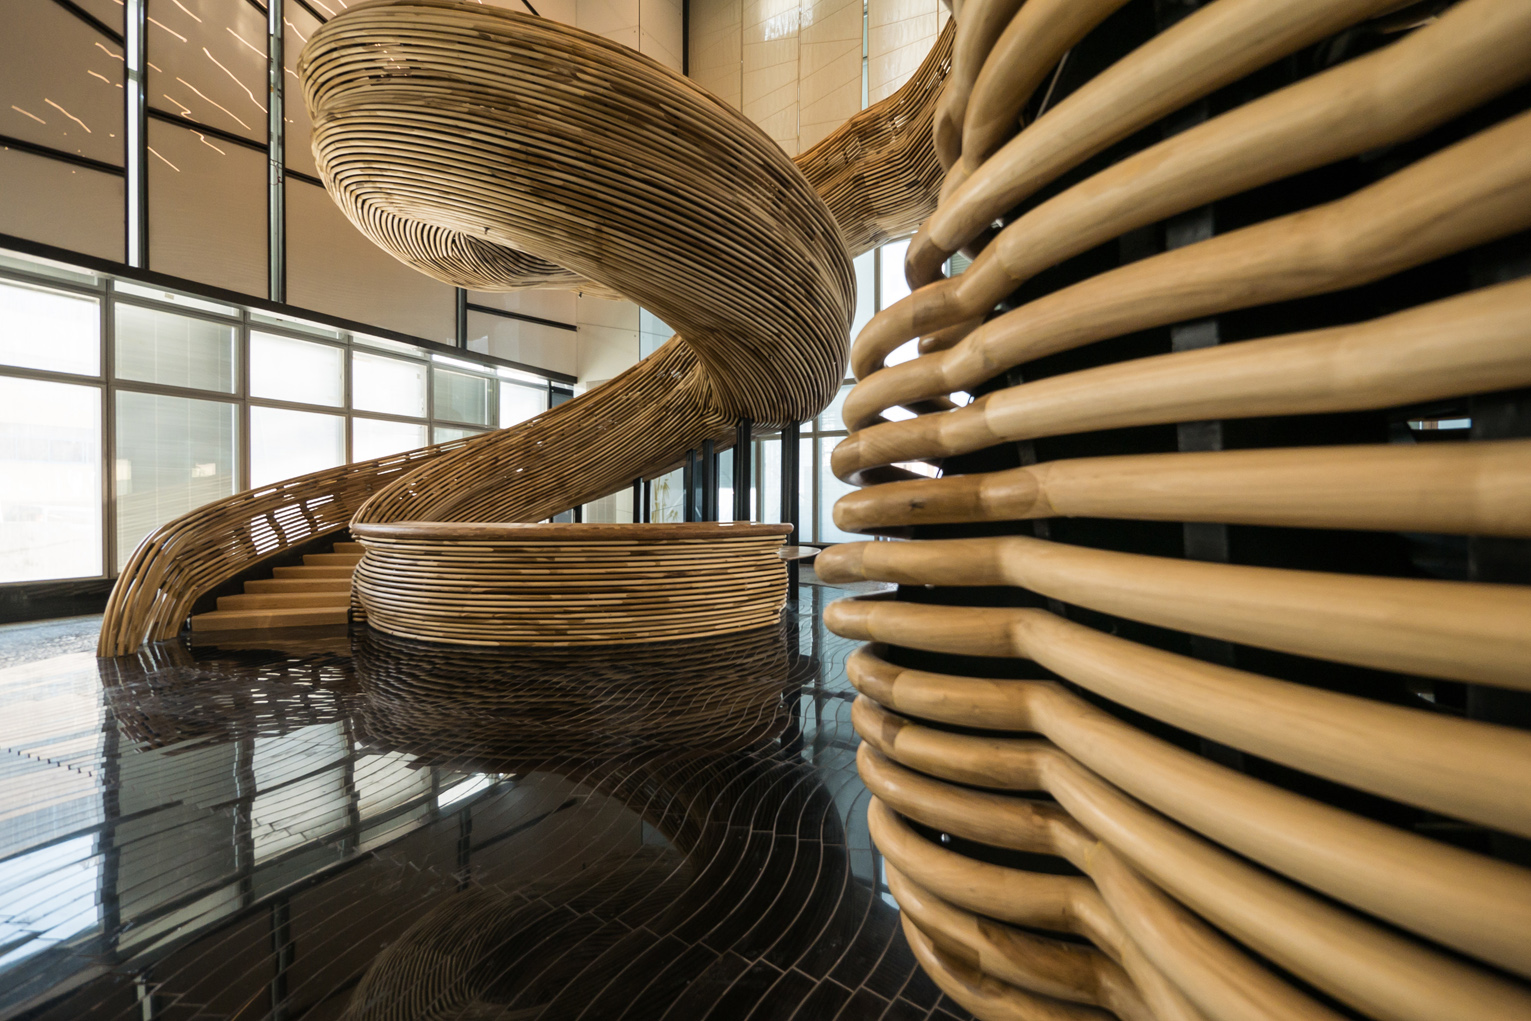 3a. Photography by ITAY SIKOLSKI - The reception desk was conceived as the starting point for the spiraling wooden sculpture, completed with the same wooden profiles as the railings